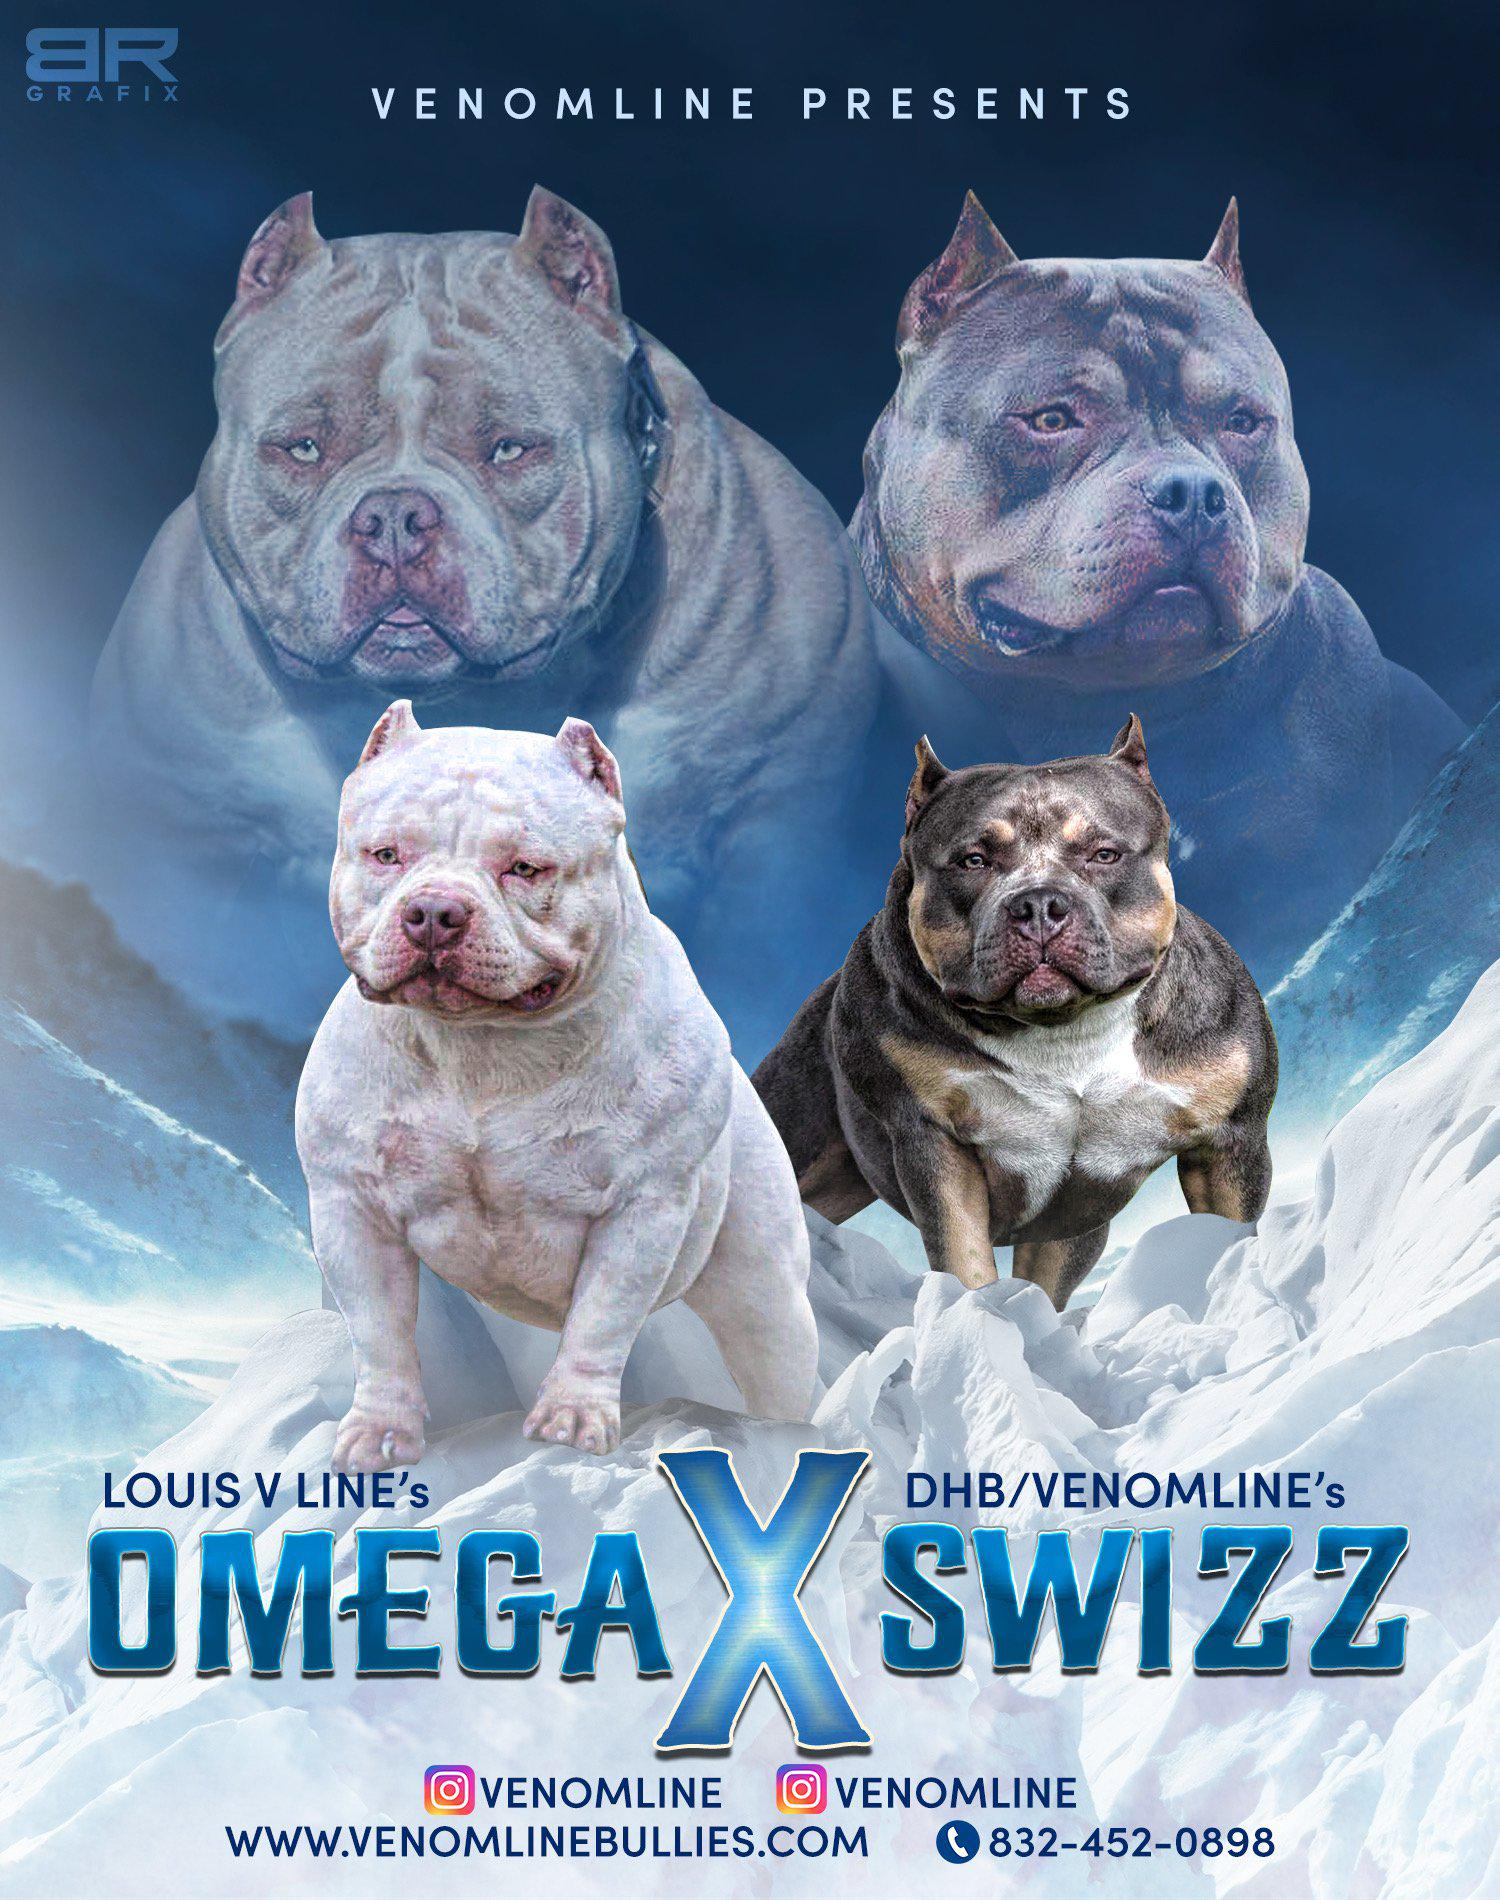 Champion American Bully, Best American Bully Breeders, American Bully Kennels in Florida, Top American Bully Kennels, Best Pocket American Bully Breeders, ABKC Champions, American Bully Pocket, Pocket American Bully Puppies For Sale, Venomline